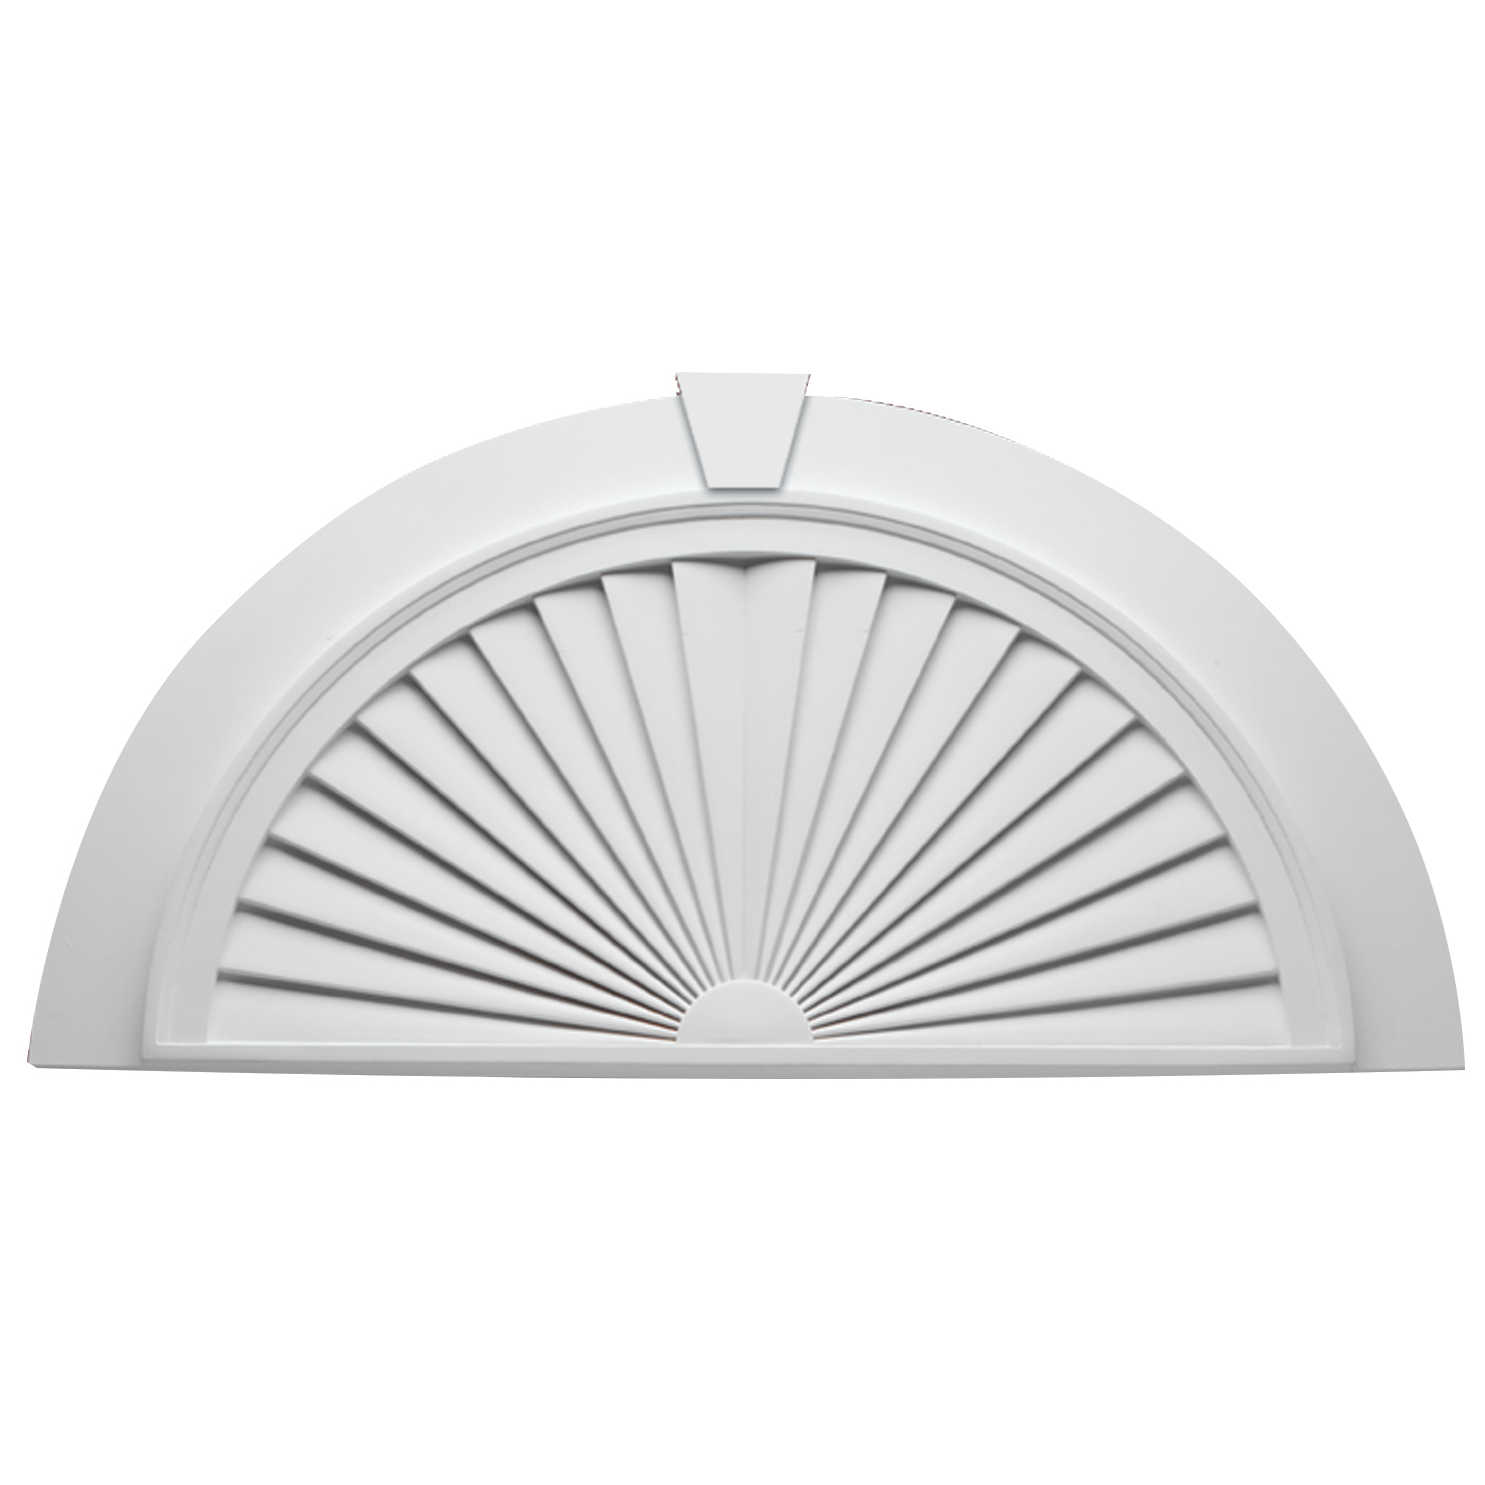 Fypon polyurethane half round sunburst with flat trim and Fypon molding